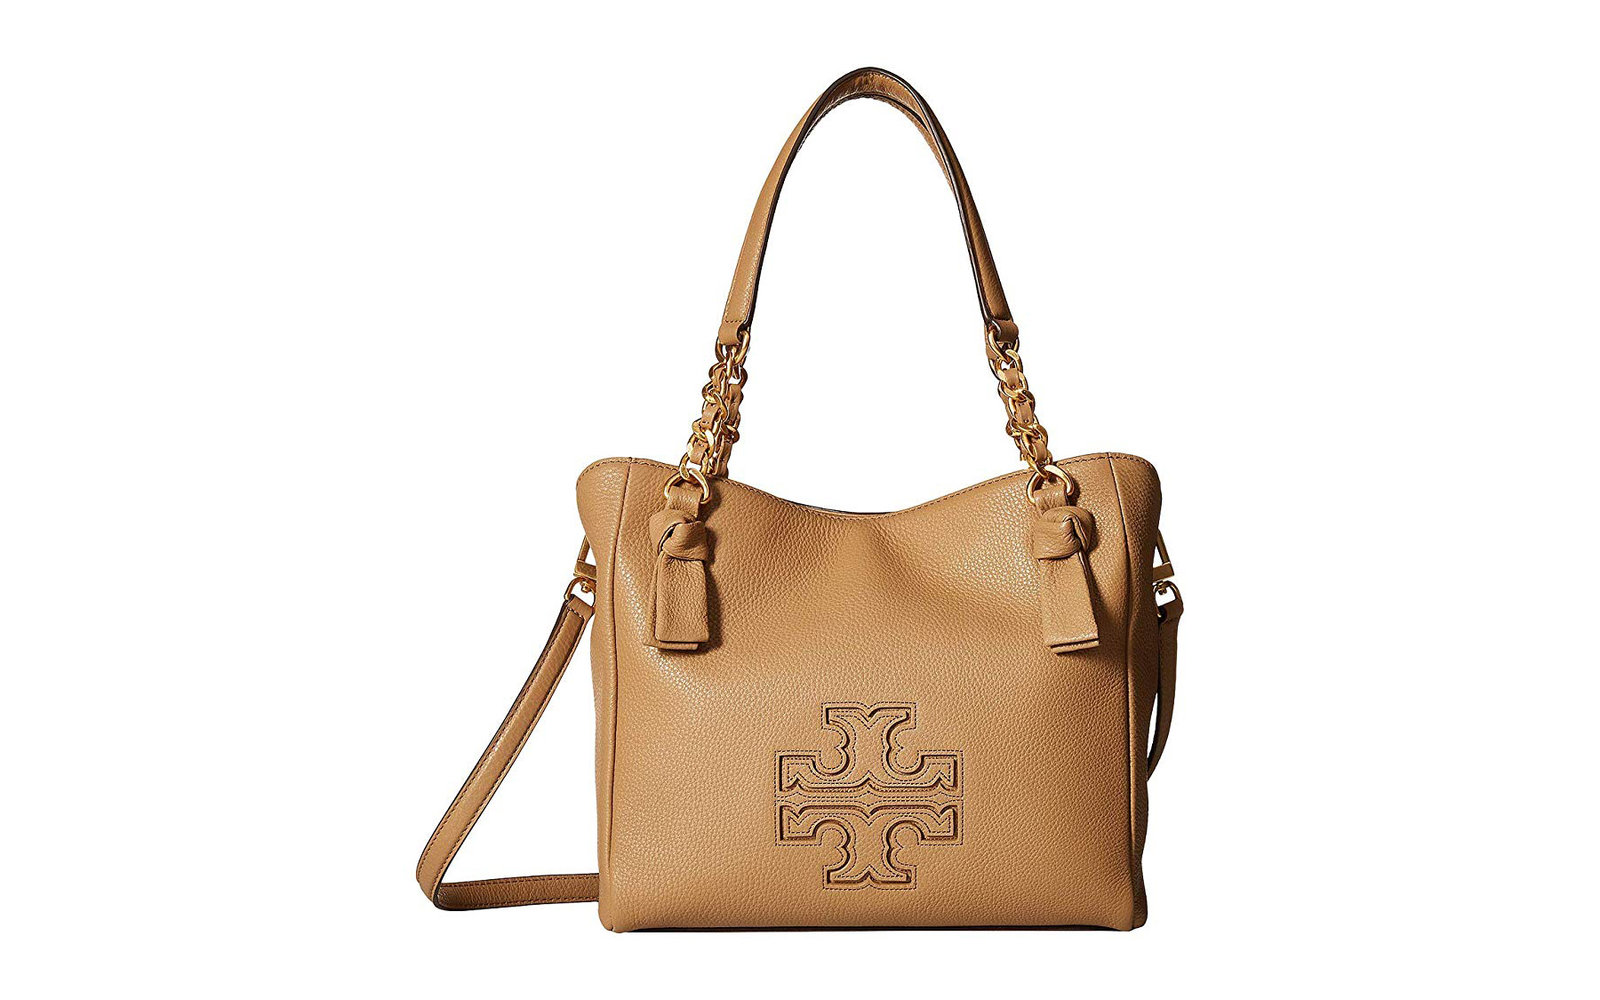 Tory Burch Small Satchel Crossbody Bag